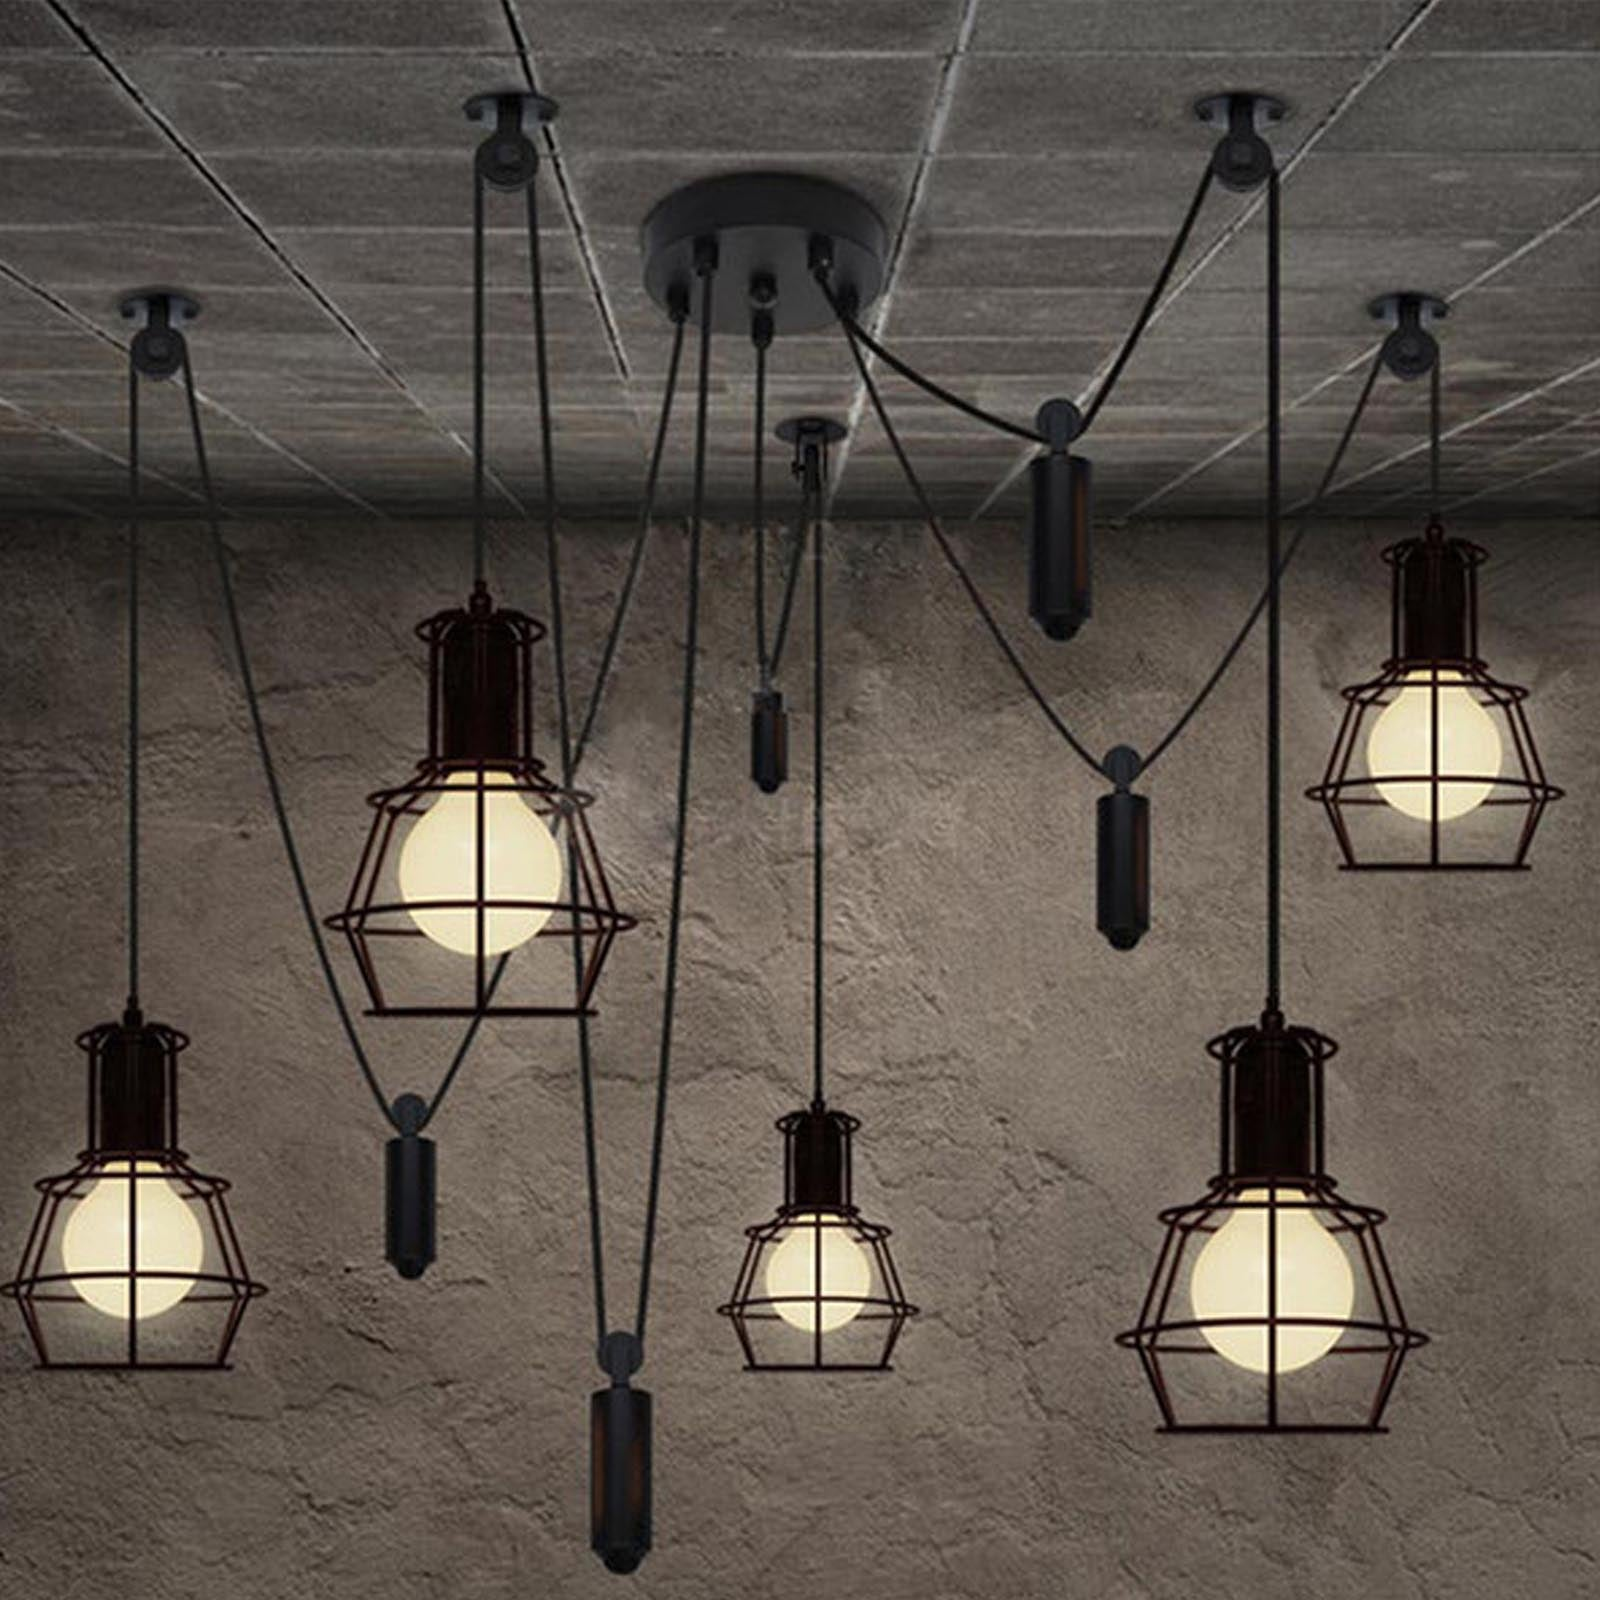 5 heads industrial   pendant  Lamp  CY-DD-110 -  صباح معلق صناعي 5 رؤوس - Shop Online Furniture and Home Decor Store in Dubai, UAE at ebarza